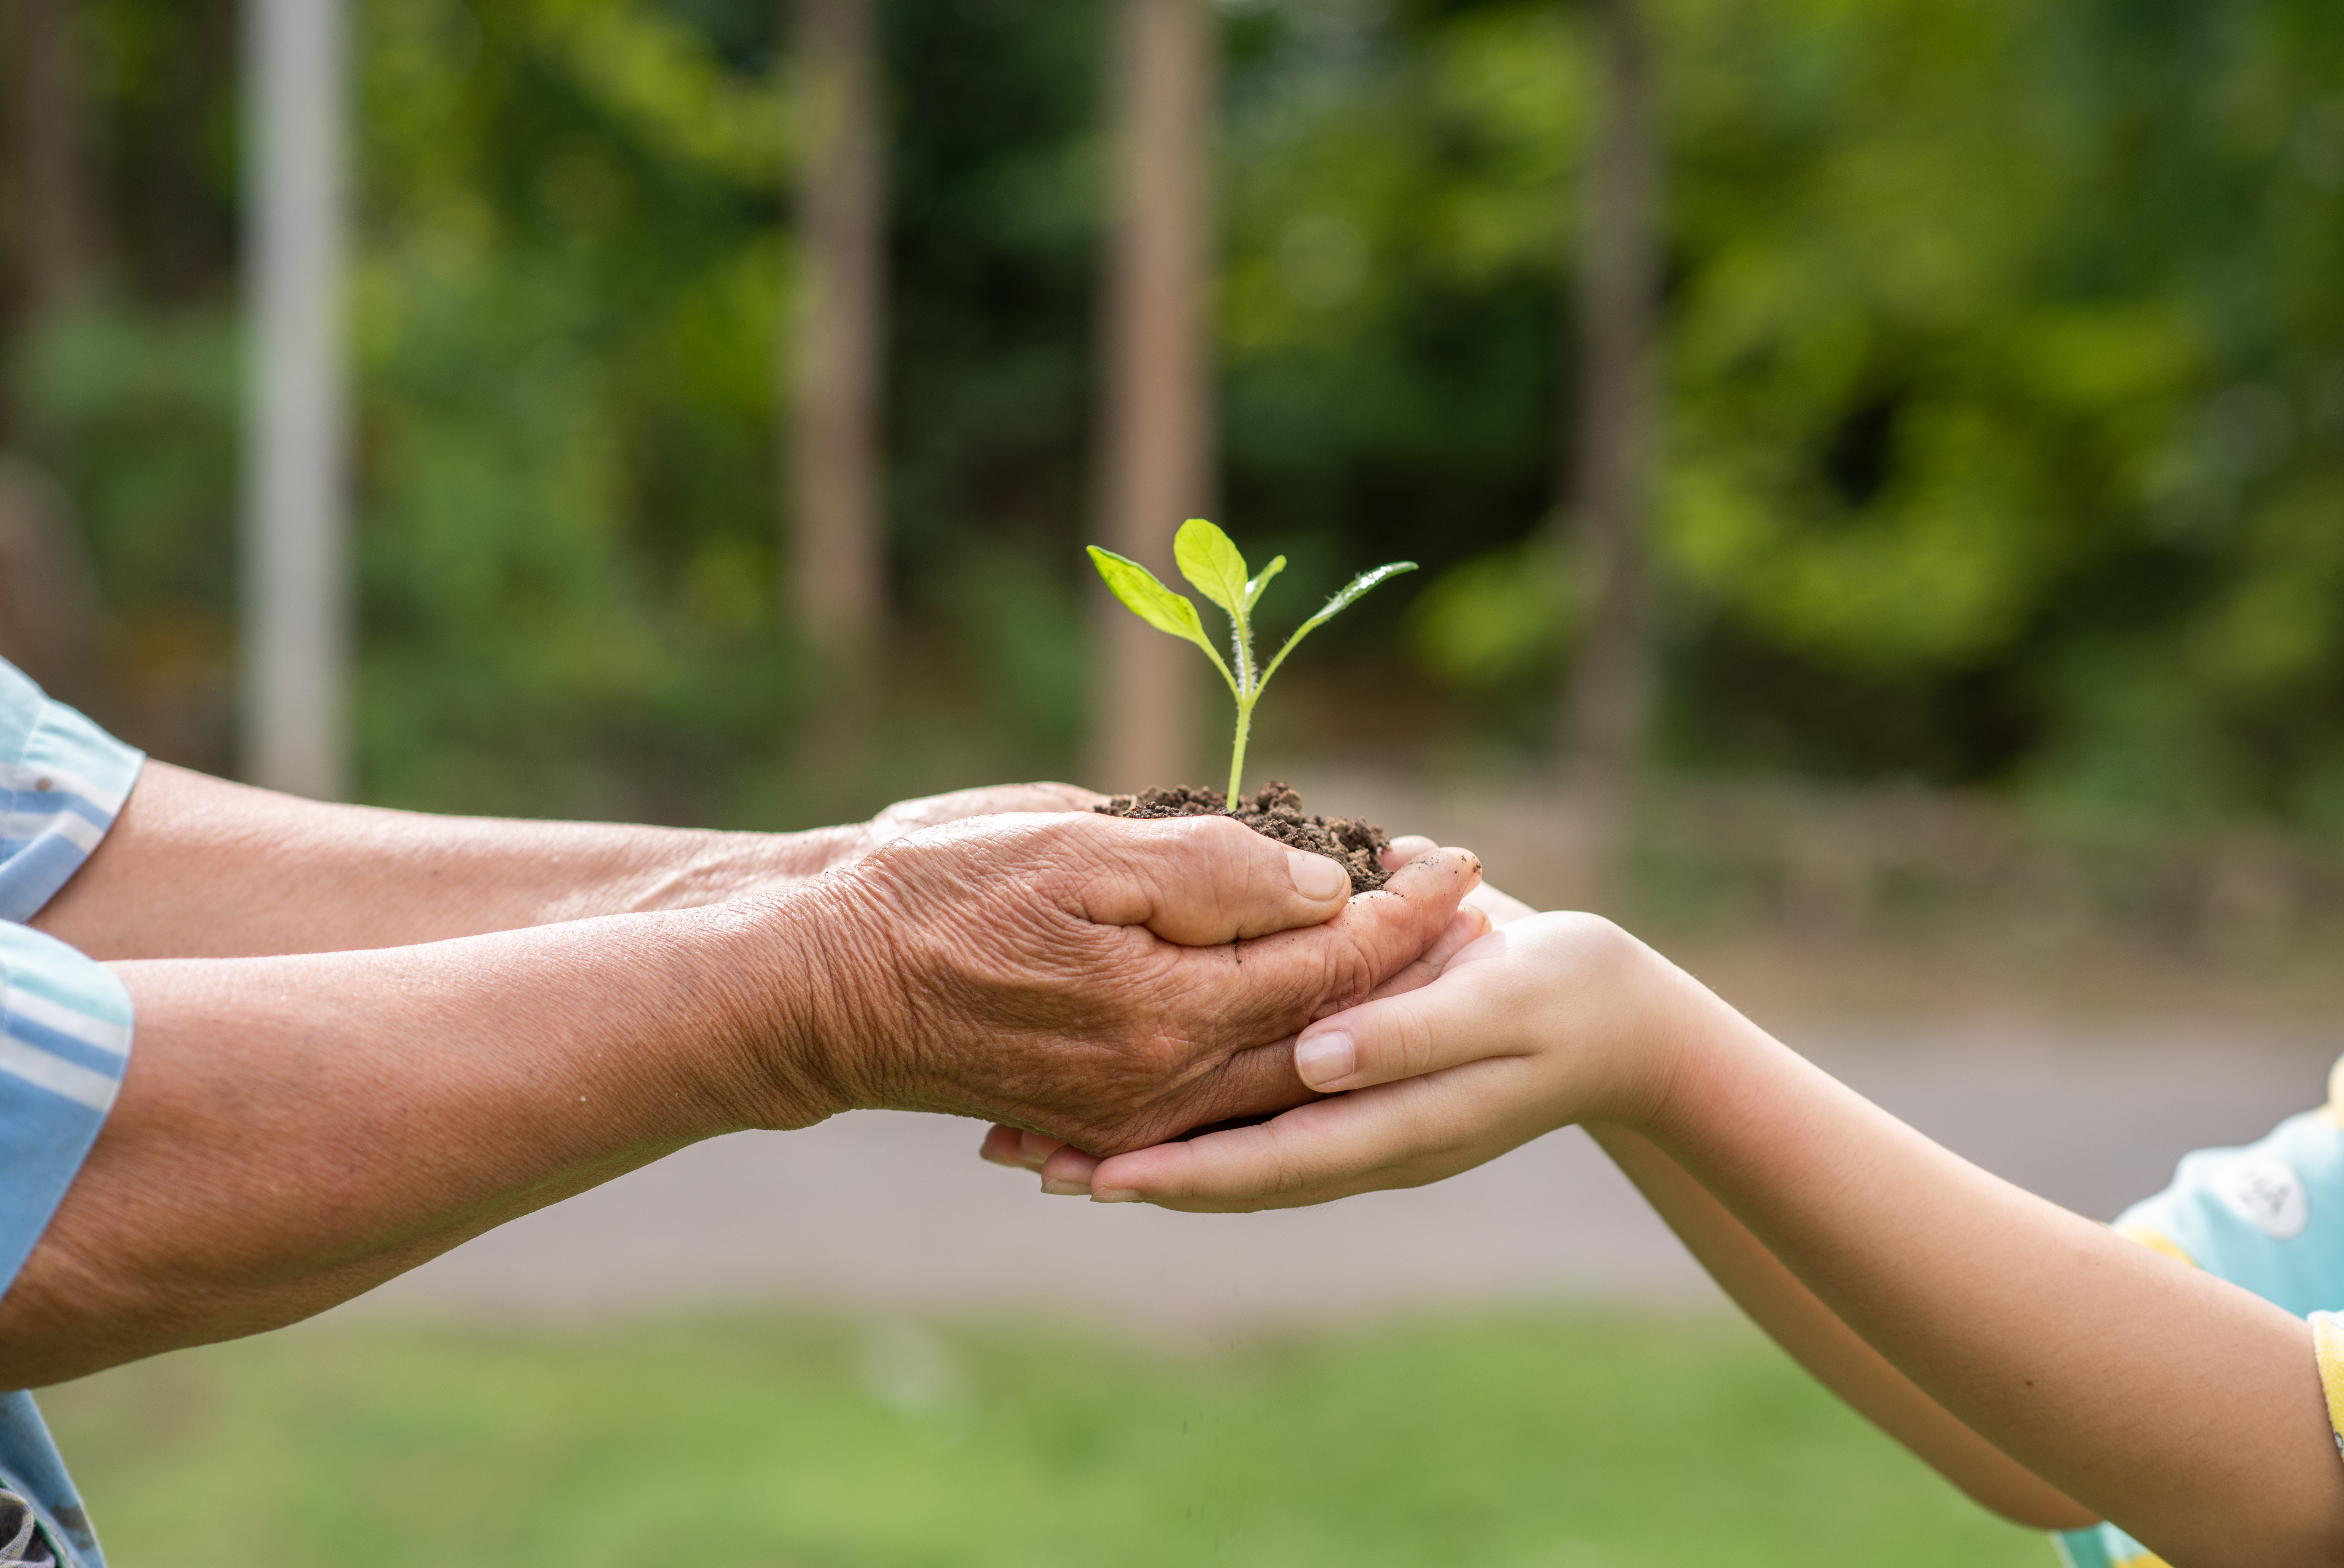 A small tree growing with soil forwarded or delivered between the hands of the elderly and children with the green forest background. Showed the care for the environment with sustainable development.